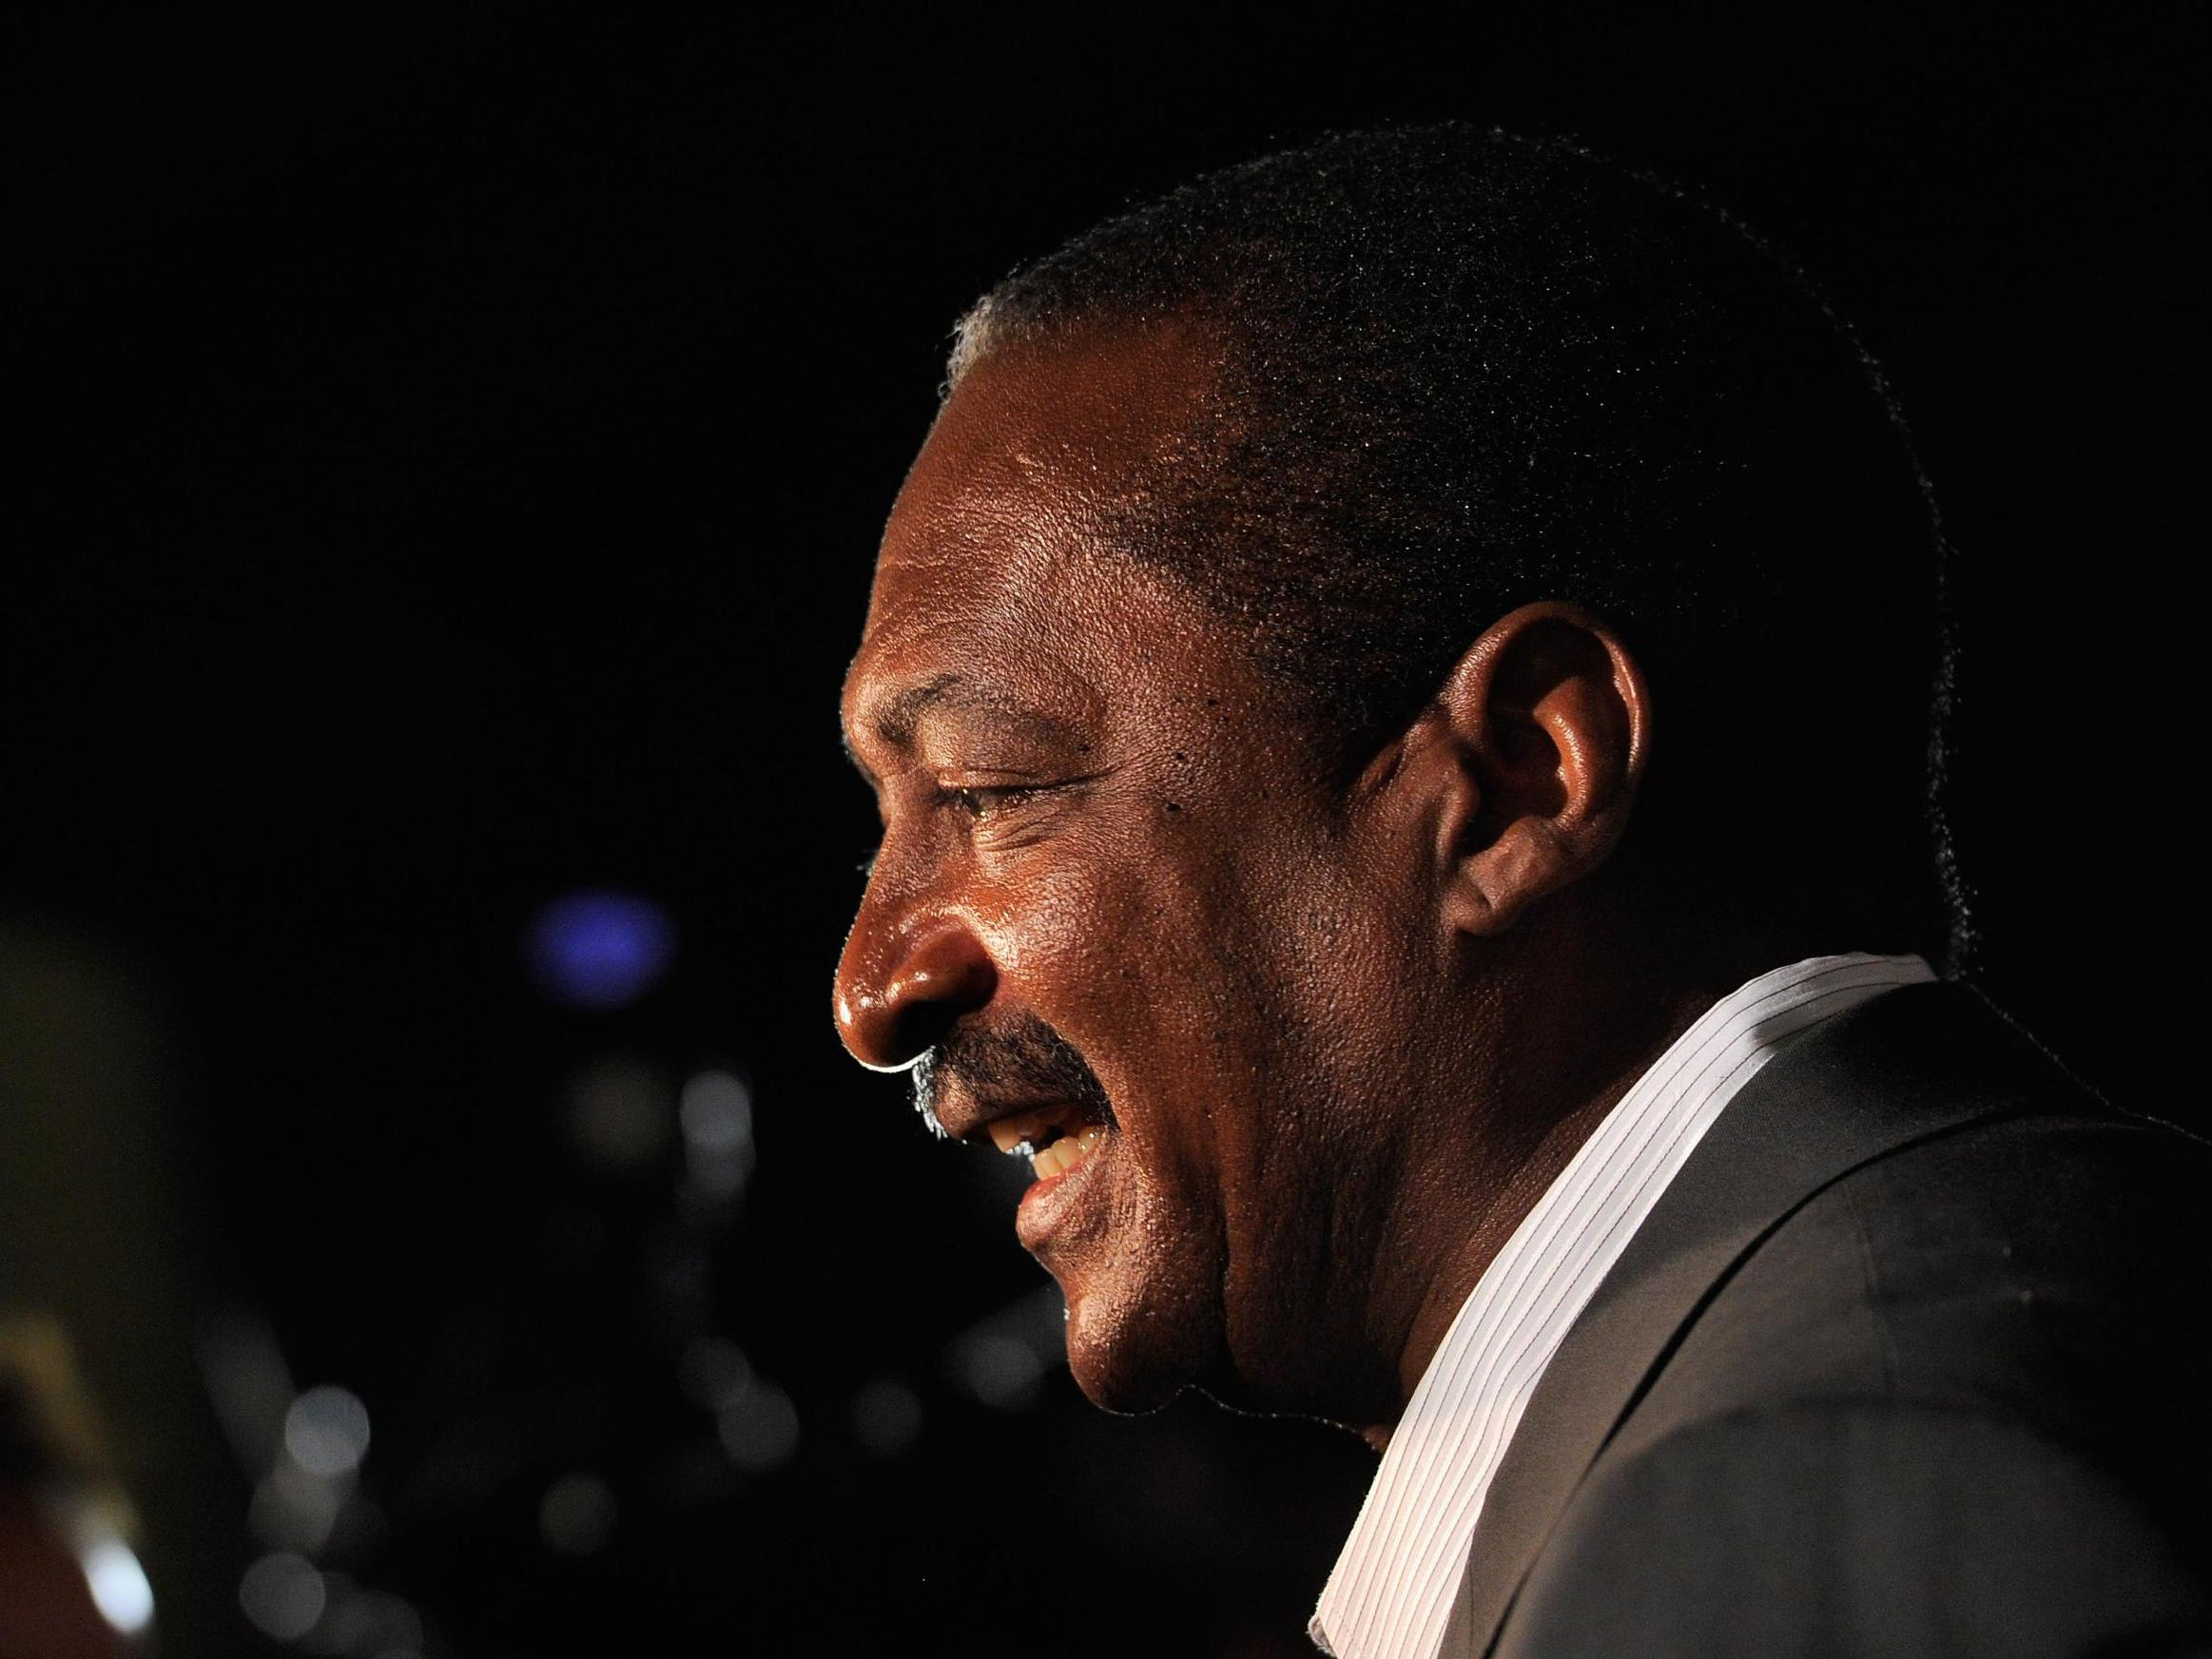 Beyoncé's father Mathew Knowles opens up about breast cancer diagnosis